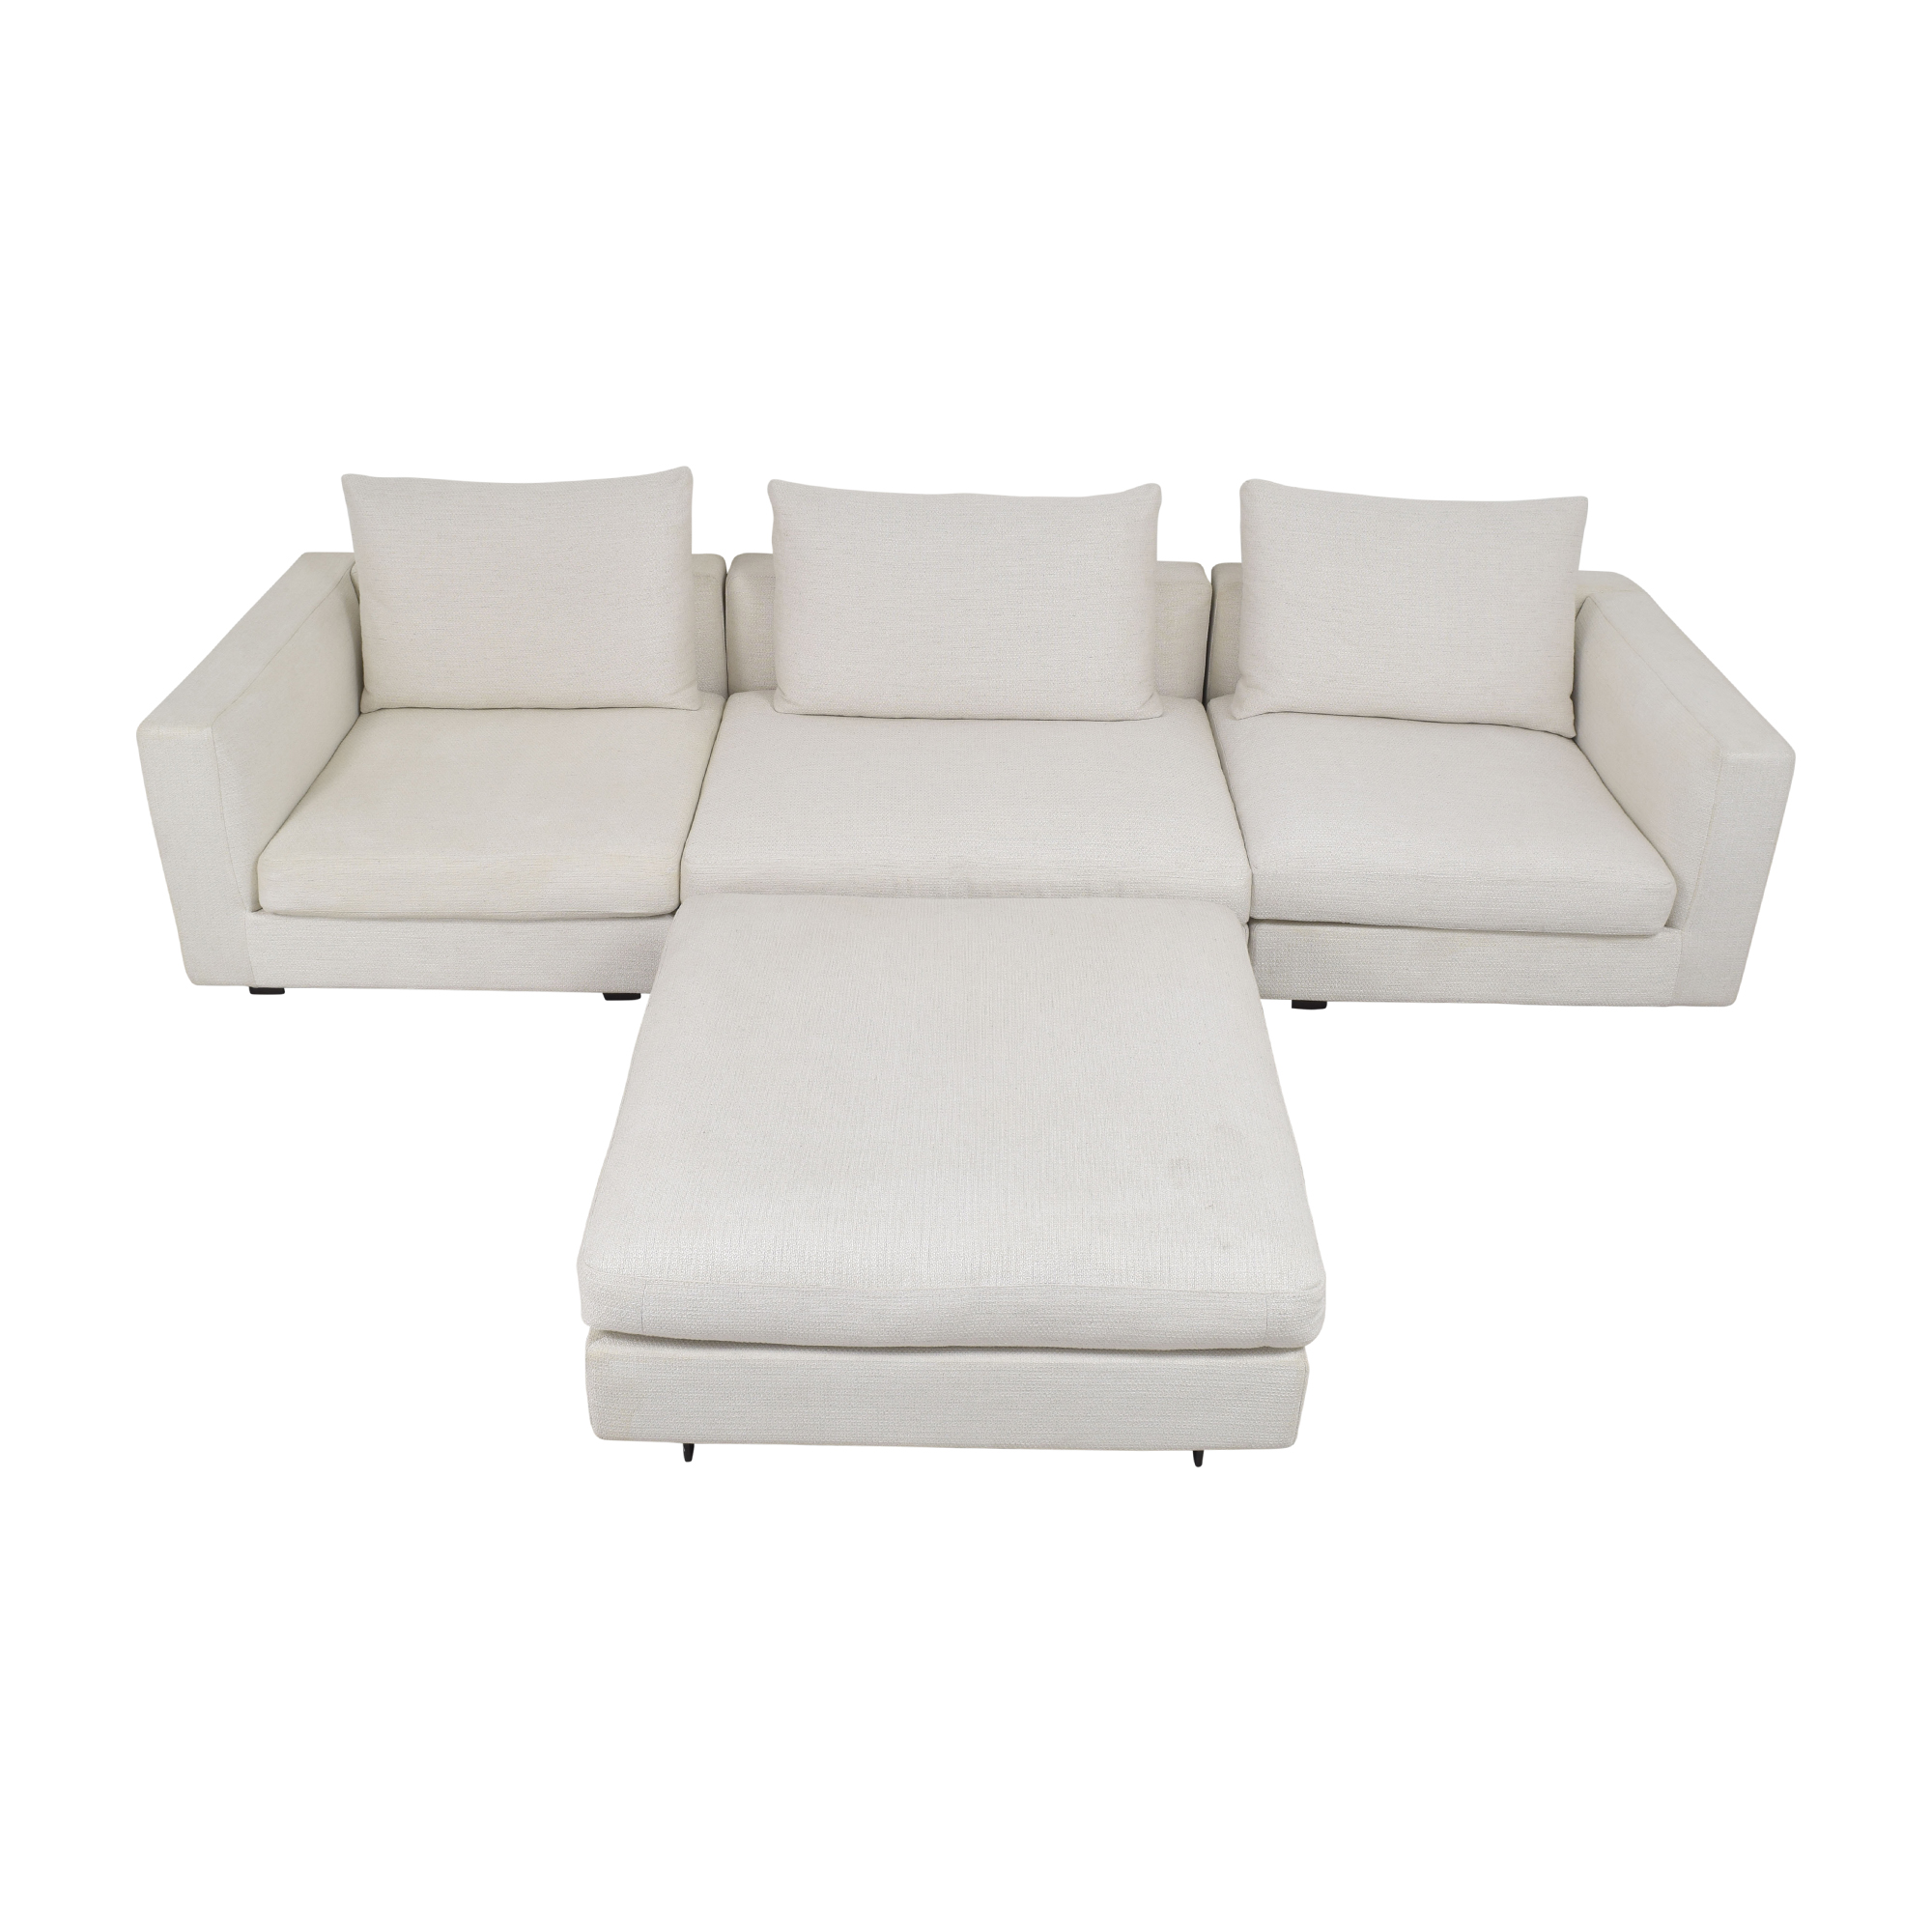 buy Camerich Freetown Sectional Sofa with Ottoman Camerich